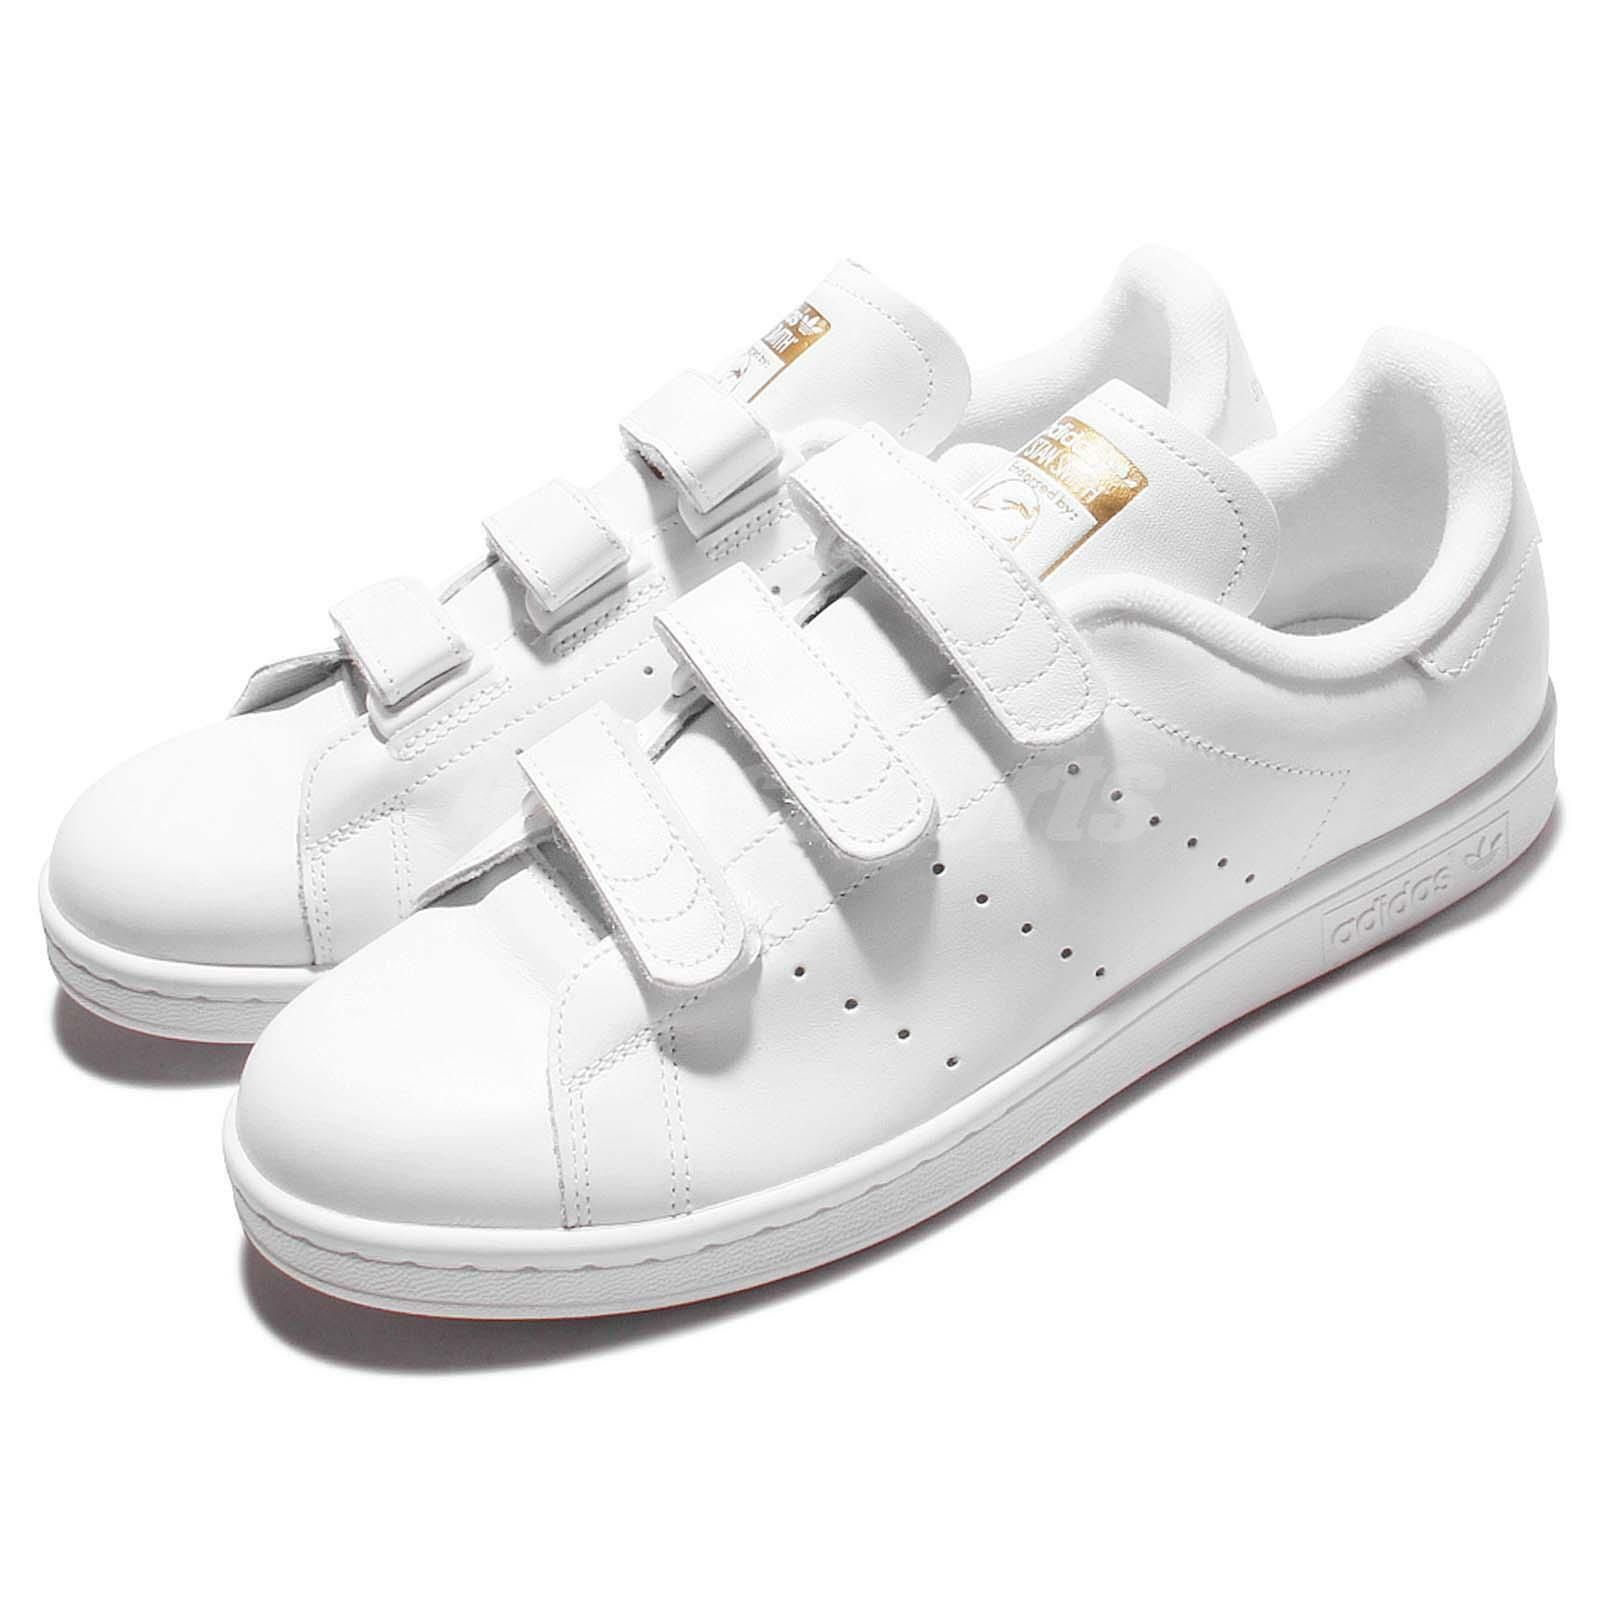 Adidas Originals Oro Stan CF Correa De Oro Originals Blanco Hombre Smith Zapatos Tenis S75188 6da3ae